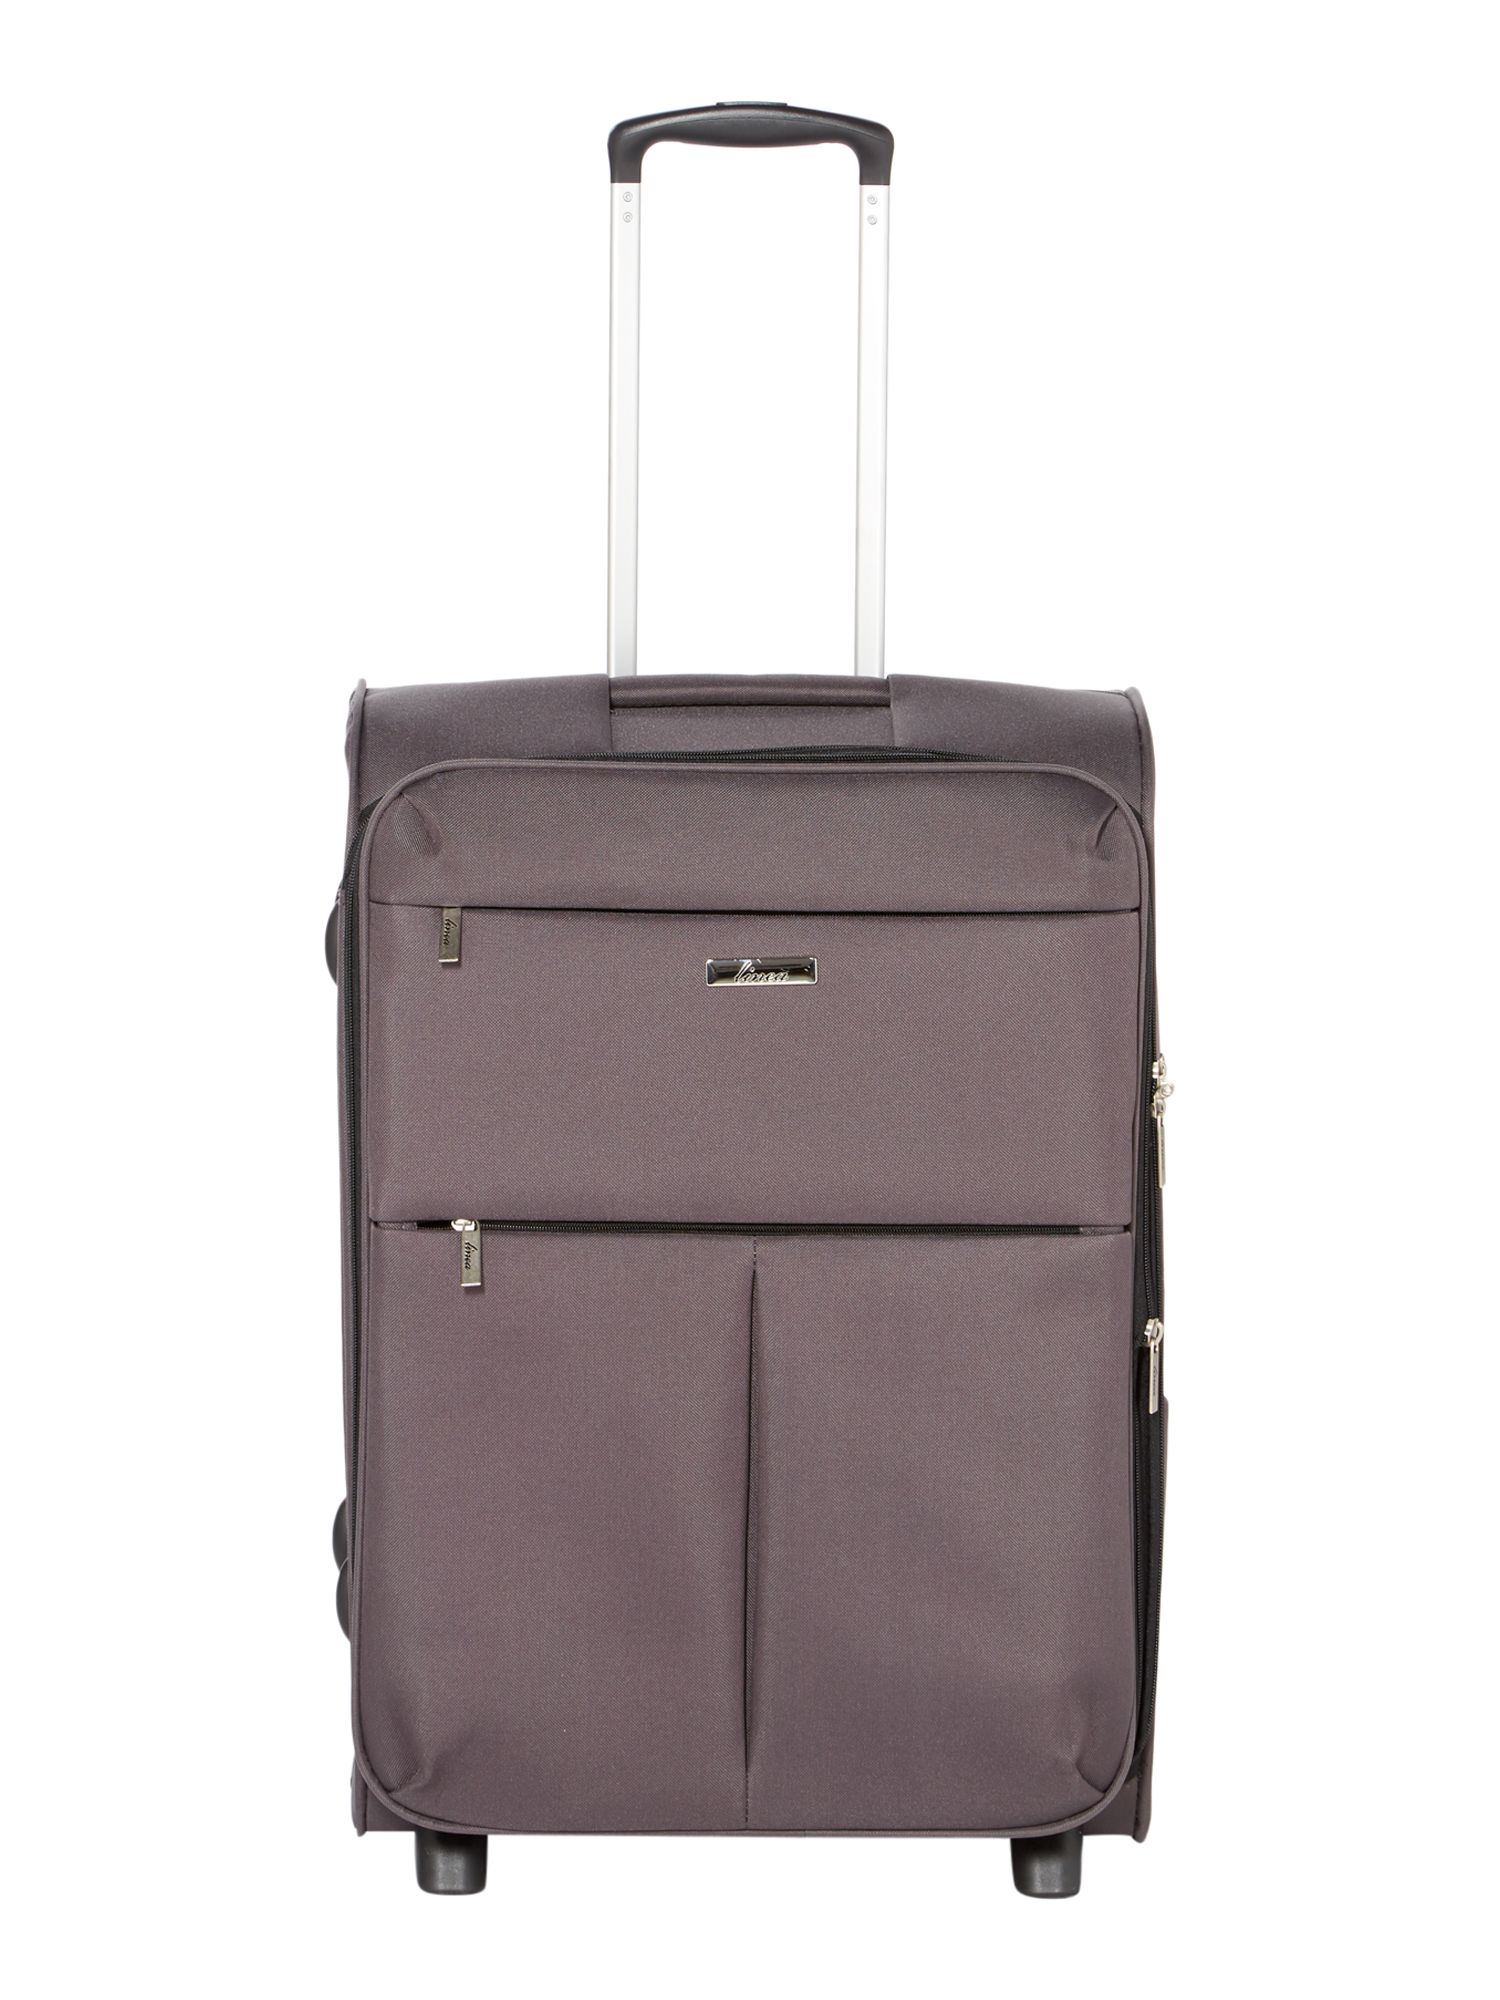 Linea Cambridge charcoal 2 wheel soft medium suitcase Charcoal